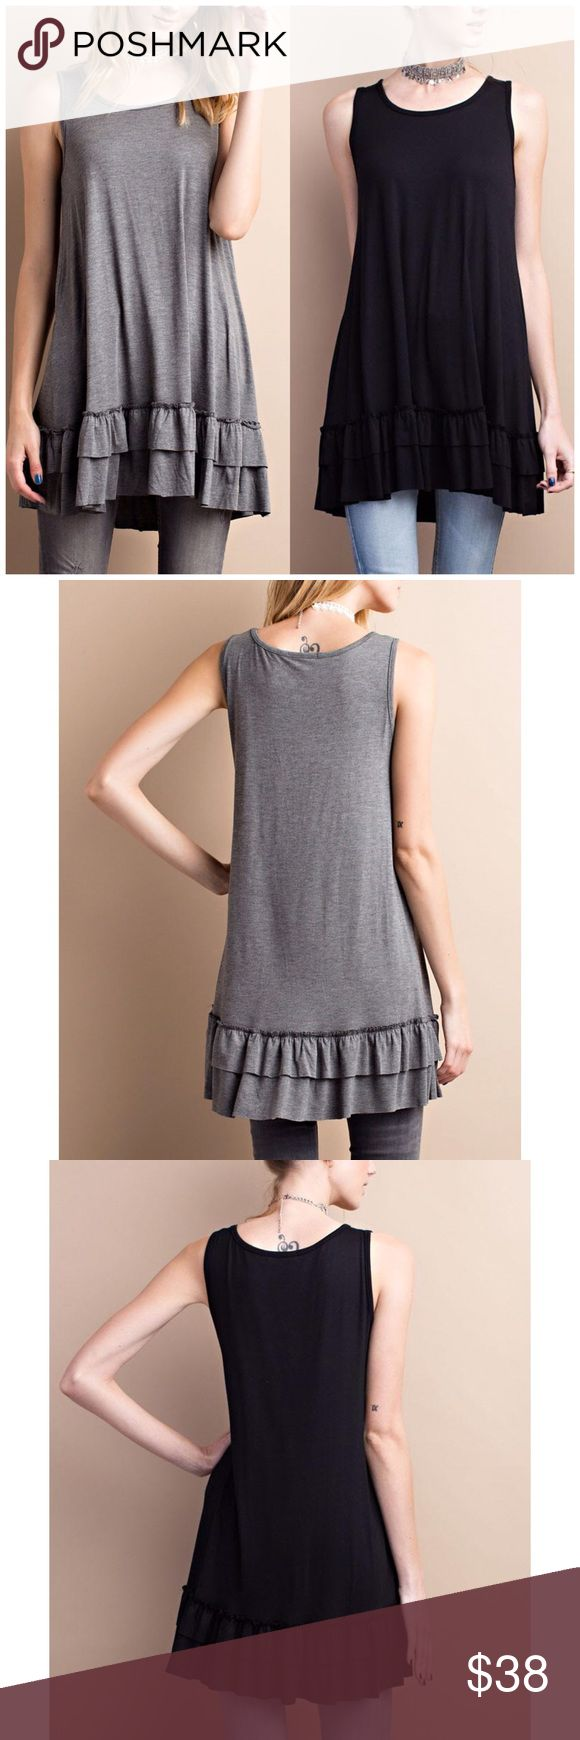 Sleeveless Double Ruffle Tunic Top Sleeveless round neck. Soft heavy rayon/ spandex material. Loose fit flow tunic with double ruffle. 95% rayon, 5% spandex. Available in Black or gray    Fits true to size  Follow us on Instagram for awesome perks! @b_chic_boutique B Chic Boutique Tops Tunics